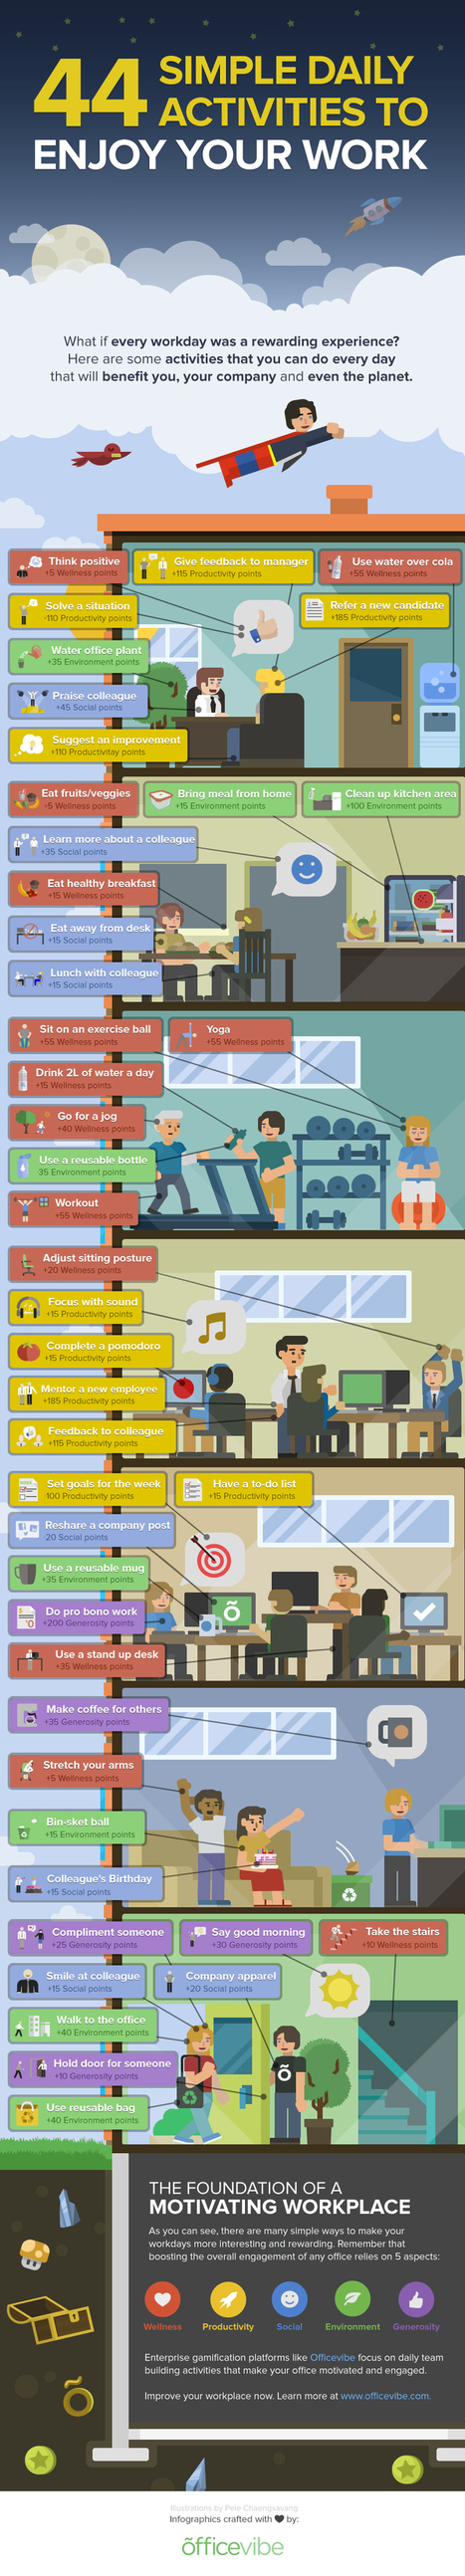 44 Daily Activities to Enjoy your Work (Infographic) | Notes for 03-24-2014 | Scoop.it